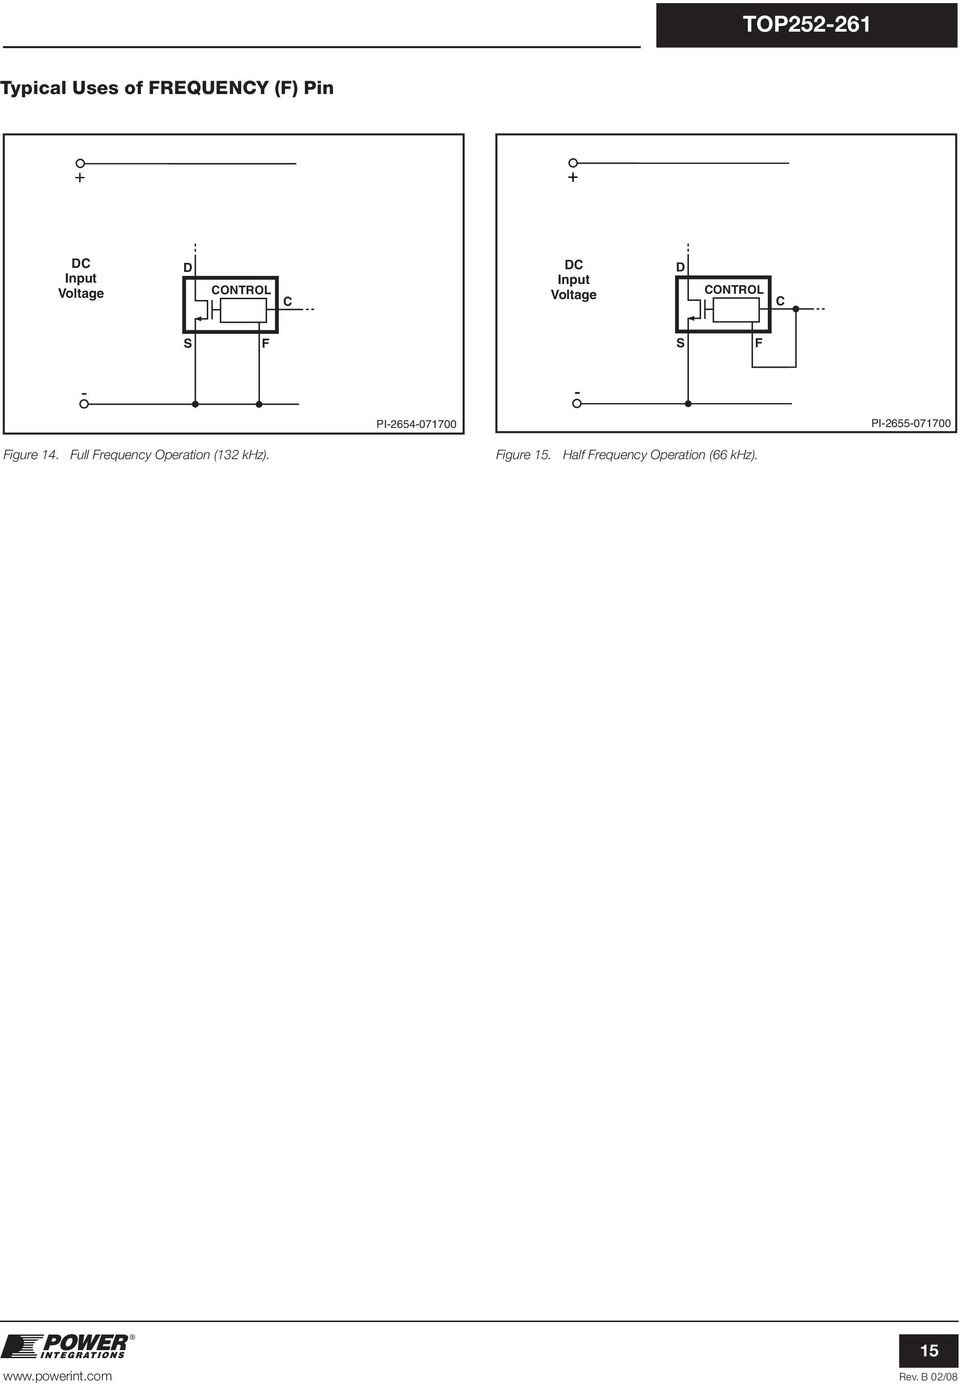 Top Topswitch Hx Family Pdf Regulated Power Supply Circuit Diagram Composed Of Ca723c Figure 14